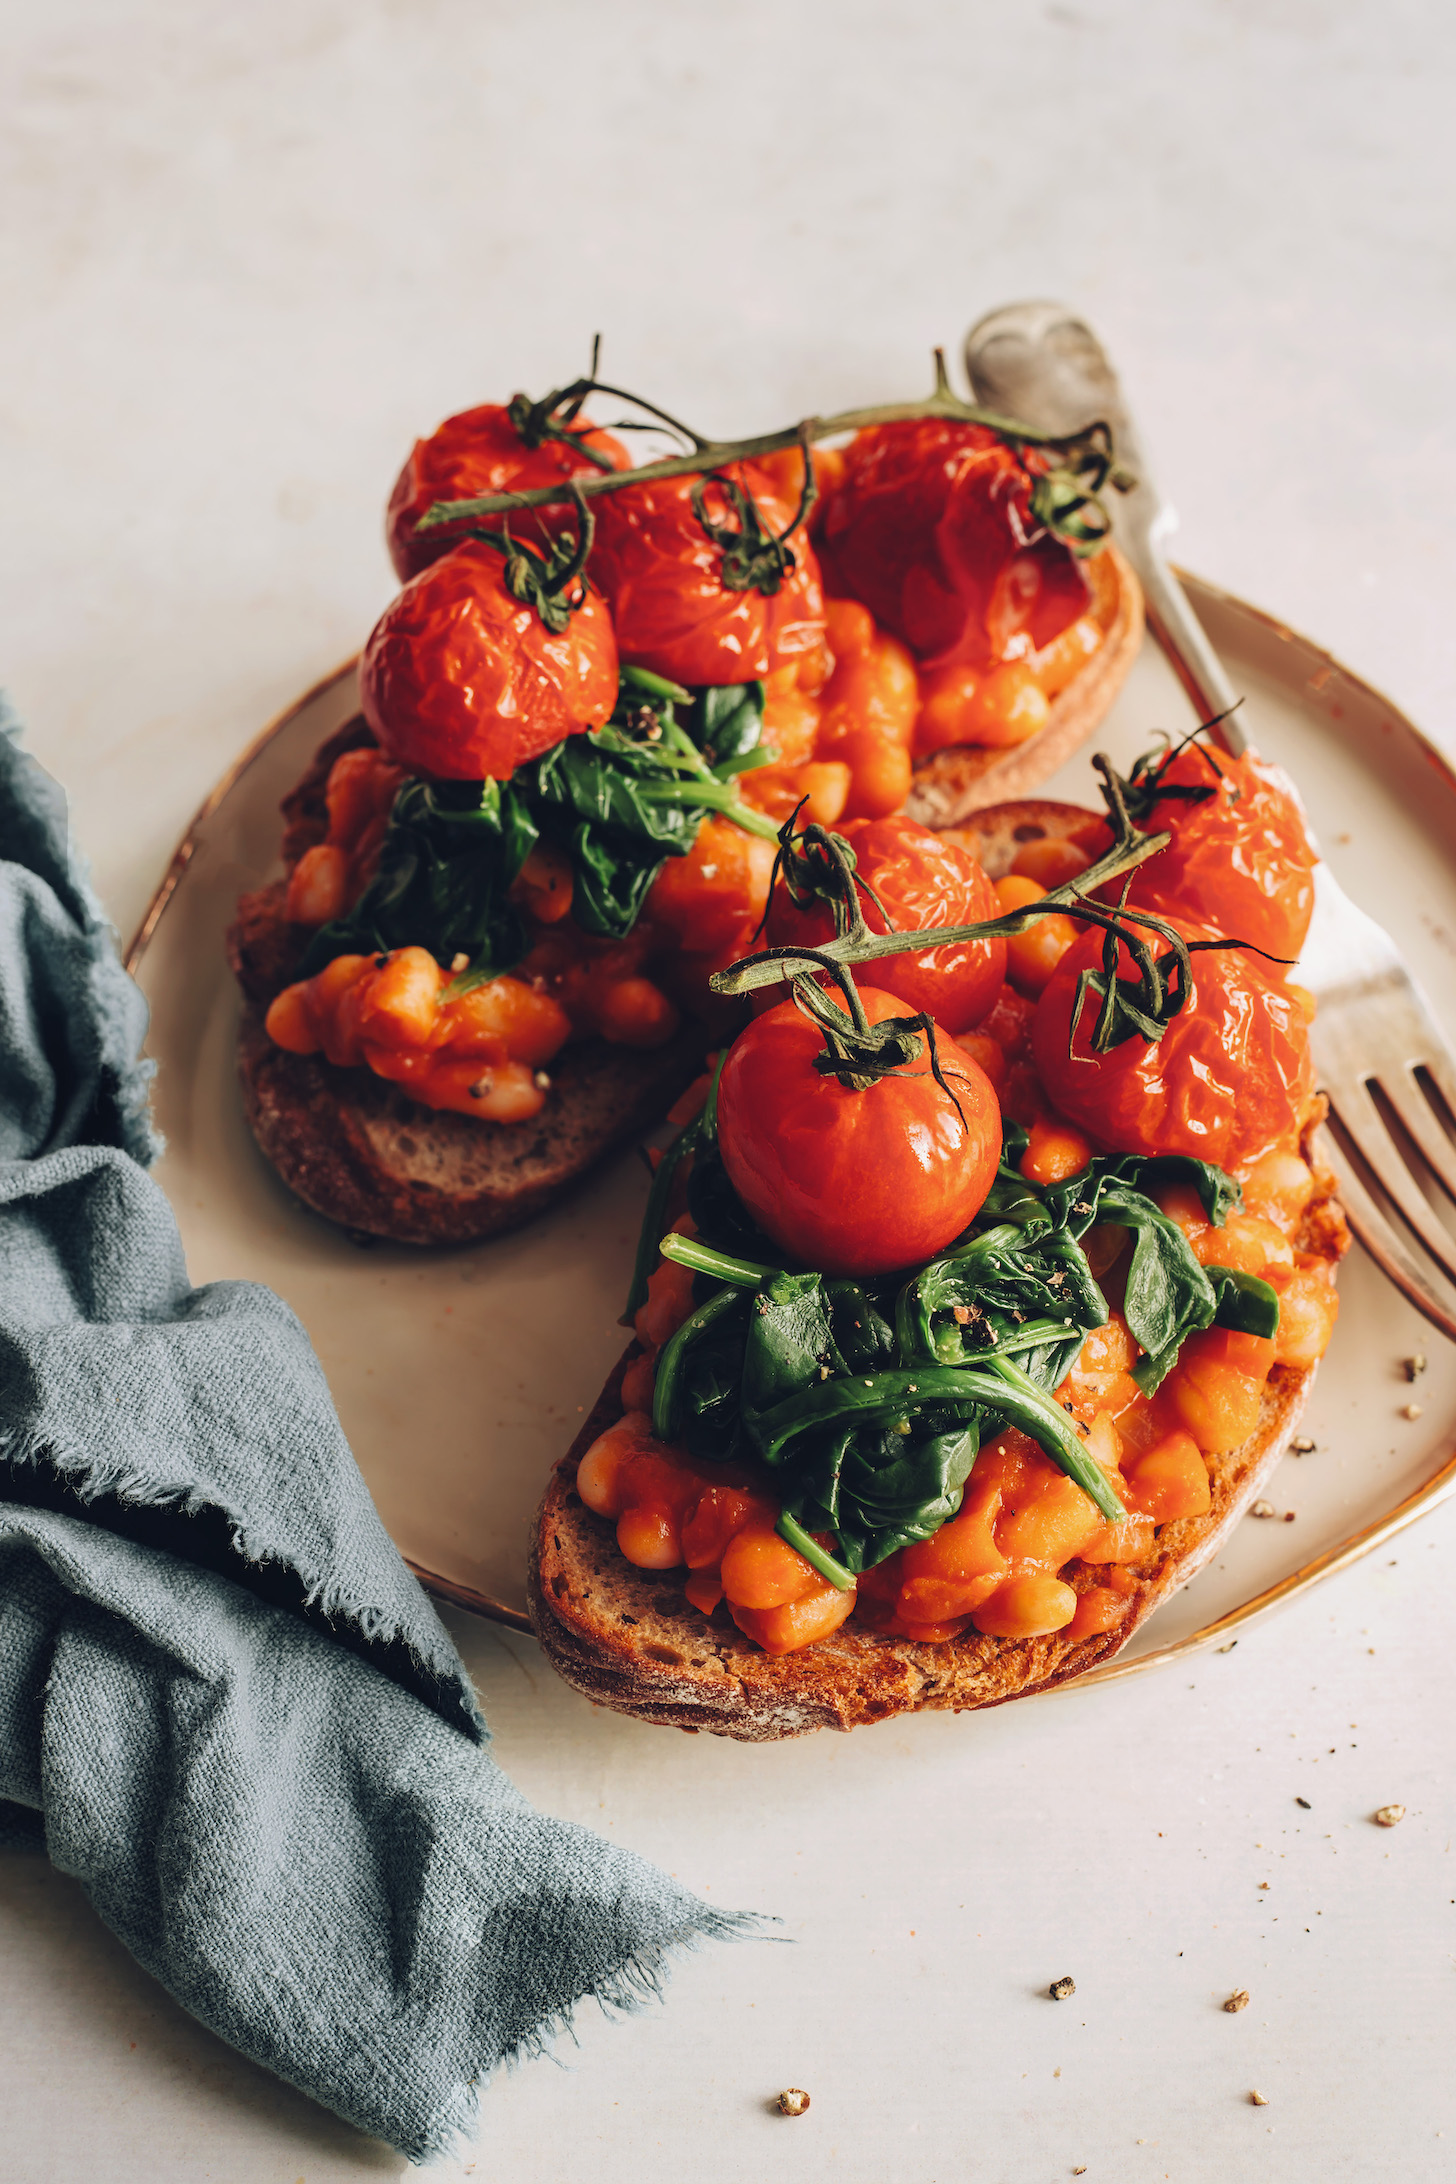 Slices of sourdough bread topped with British baked beans, wilted spinach, and slow roasted tomatoes